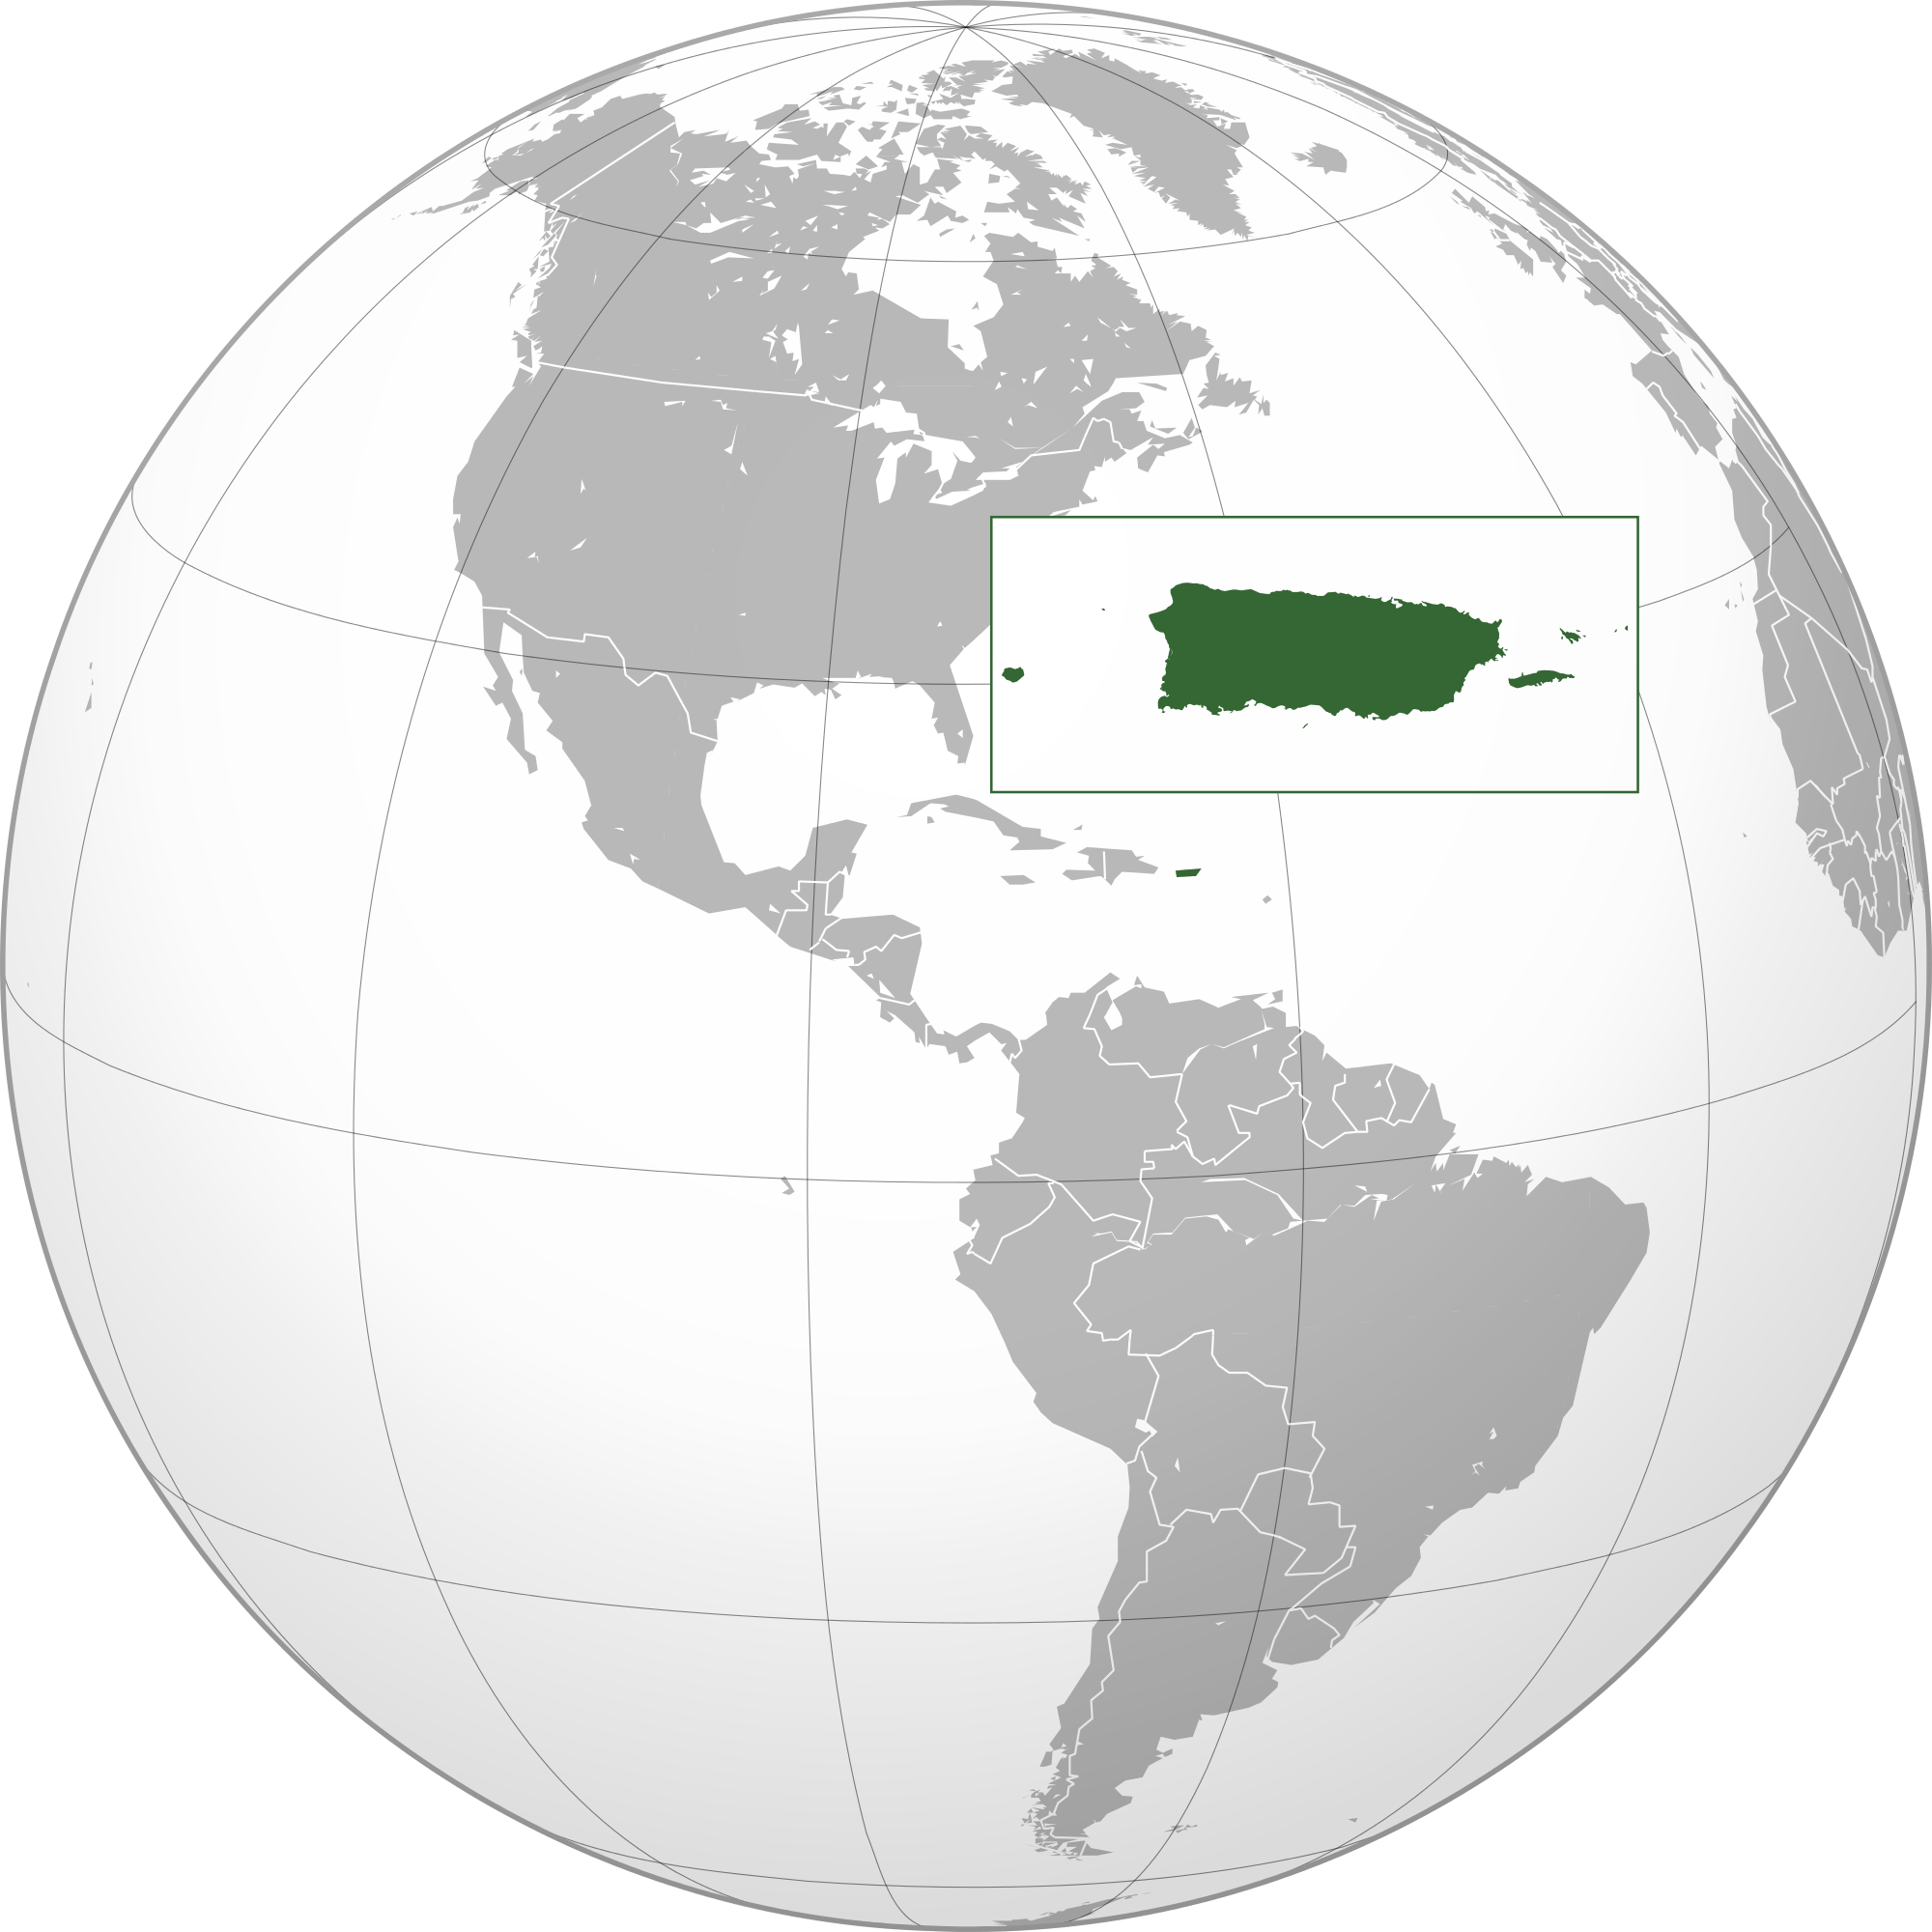 Coqui drawing boricua. Puerto rico wikipedia location